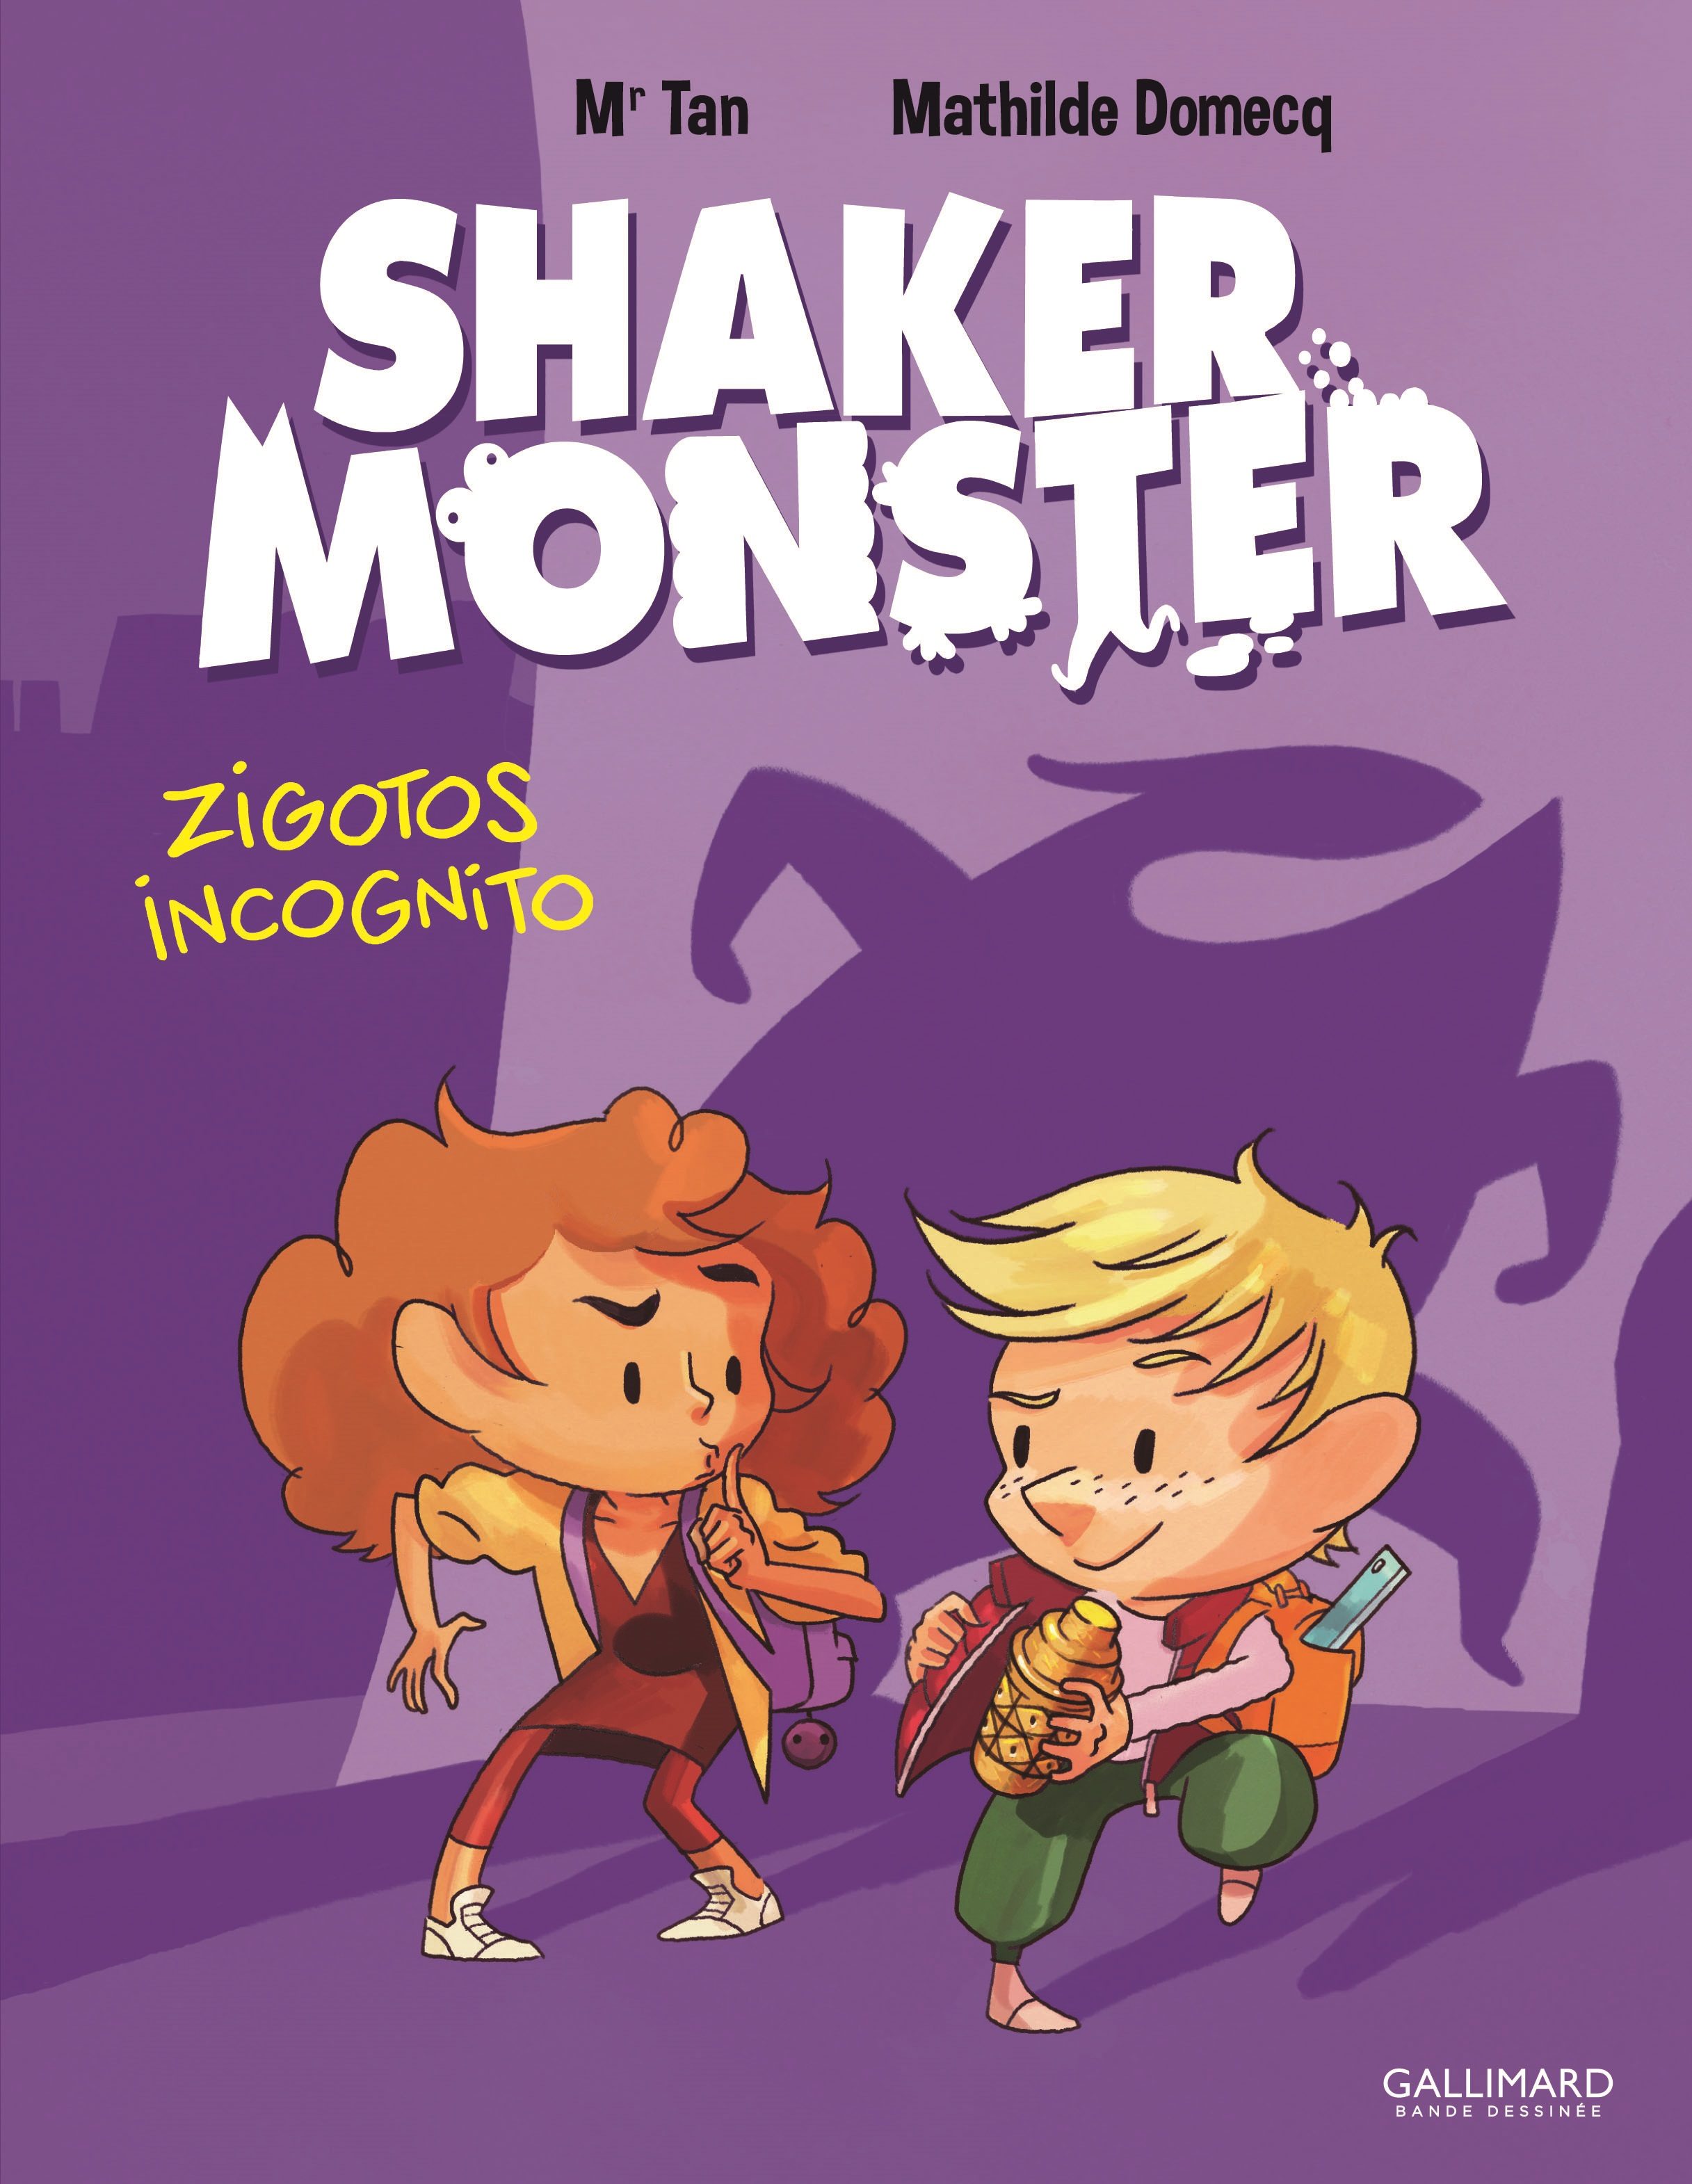 Shaker Monster (Tome 2) - Zigotos incognito | Mr Tan